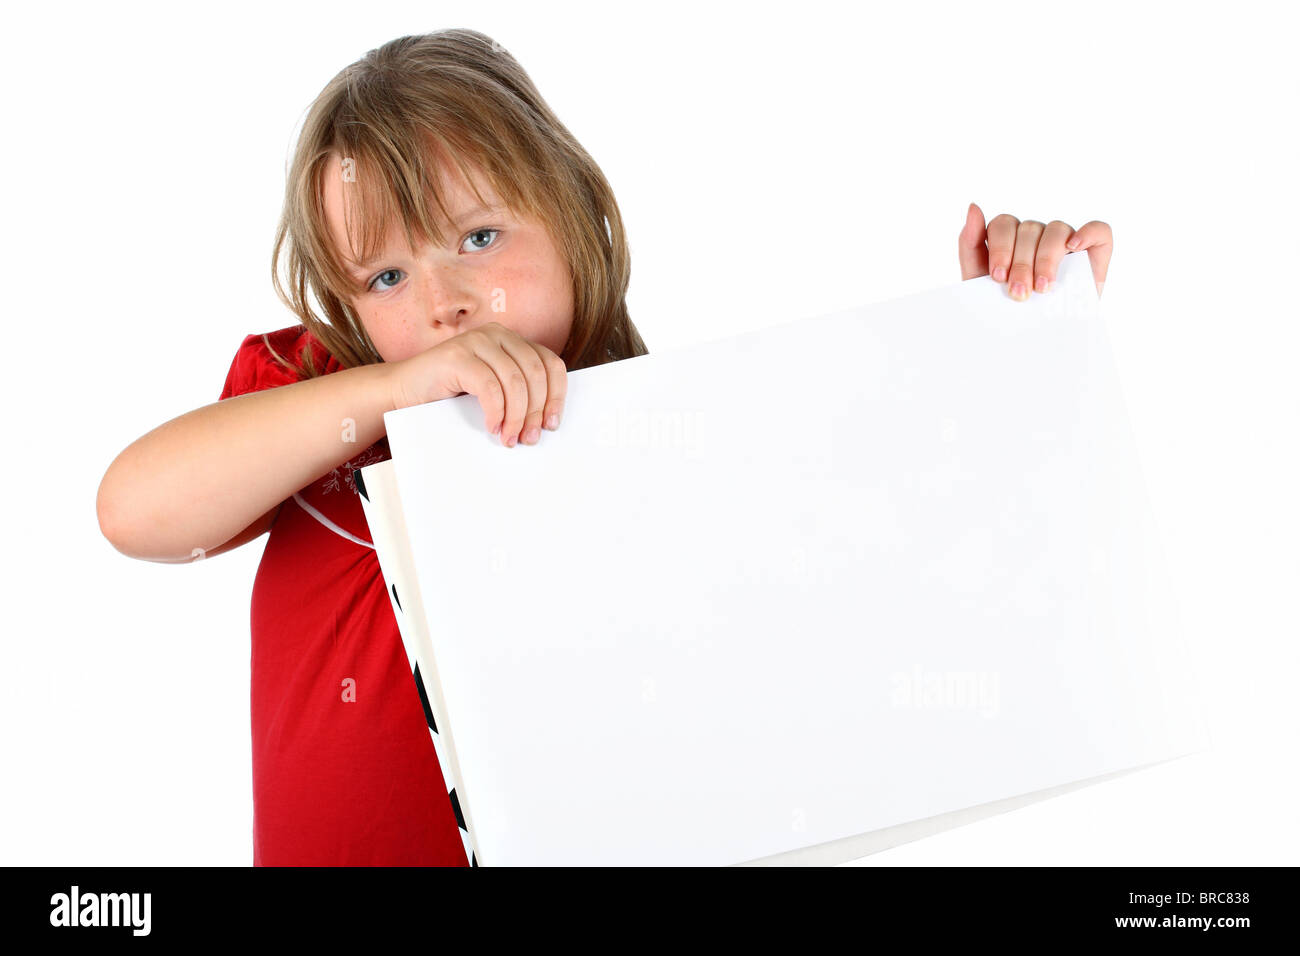 Small girl carrying a blank paper with room for text isolated on white - Stock Image